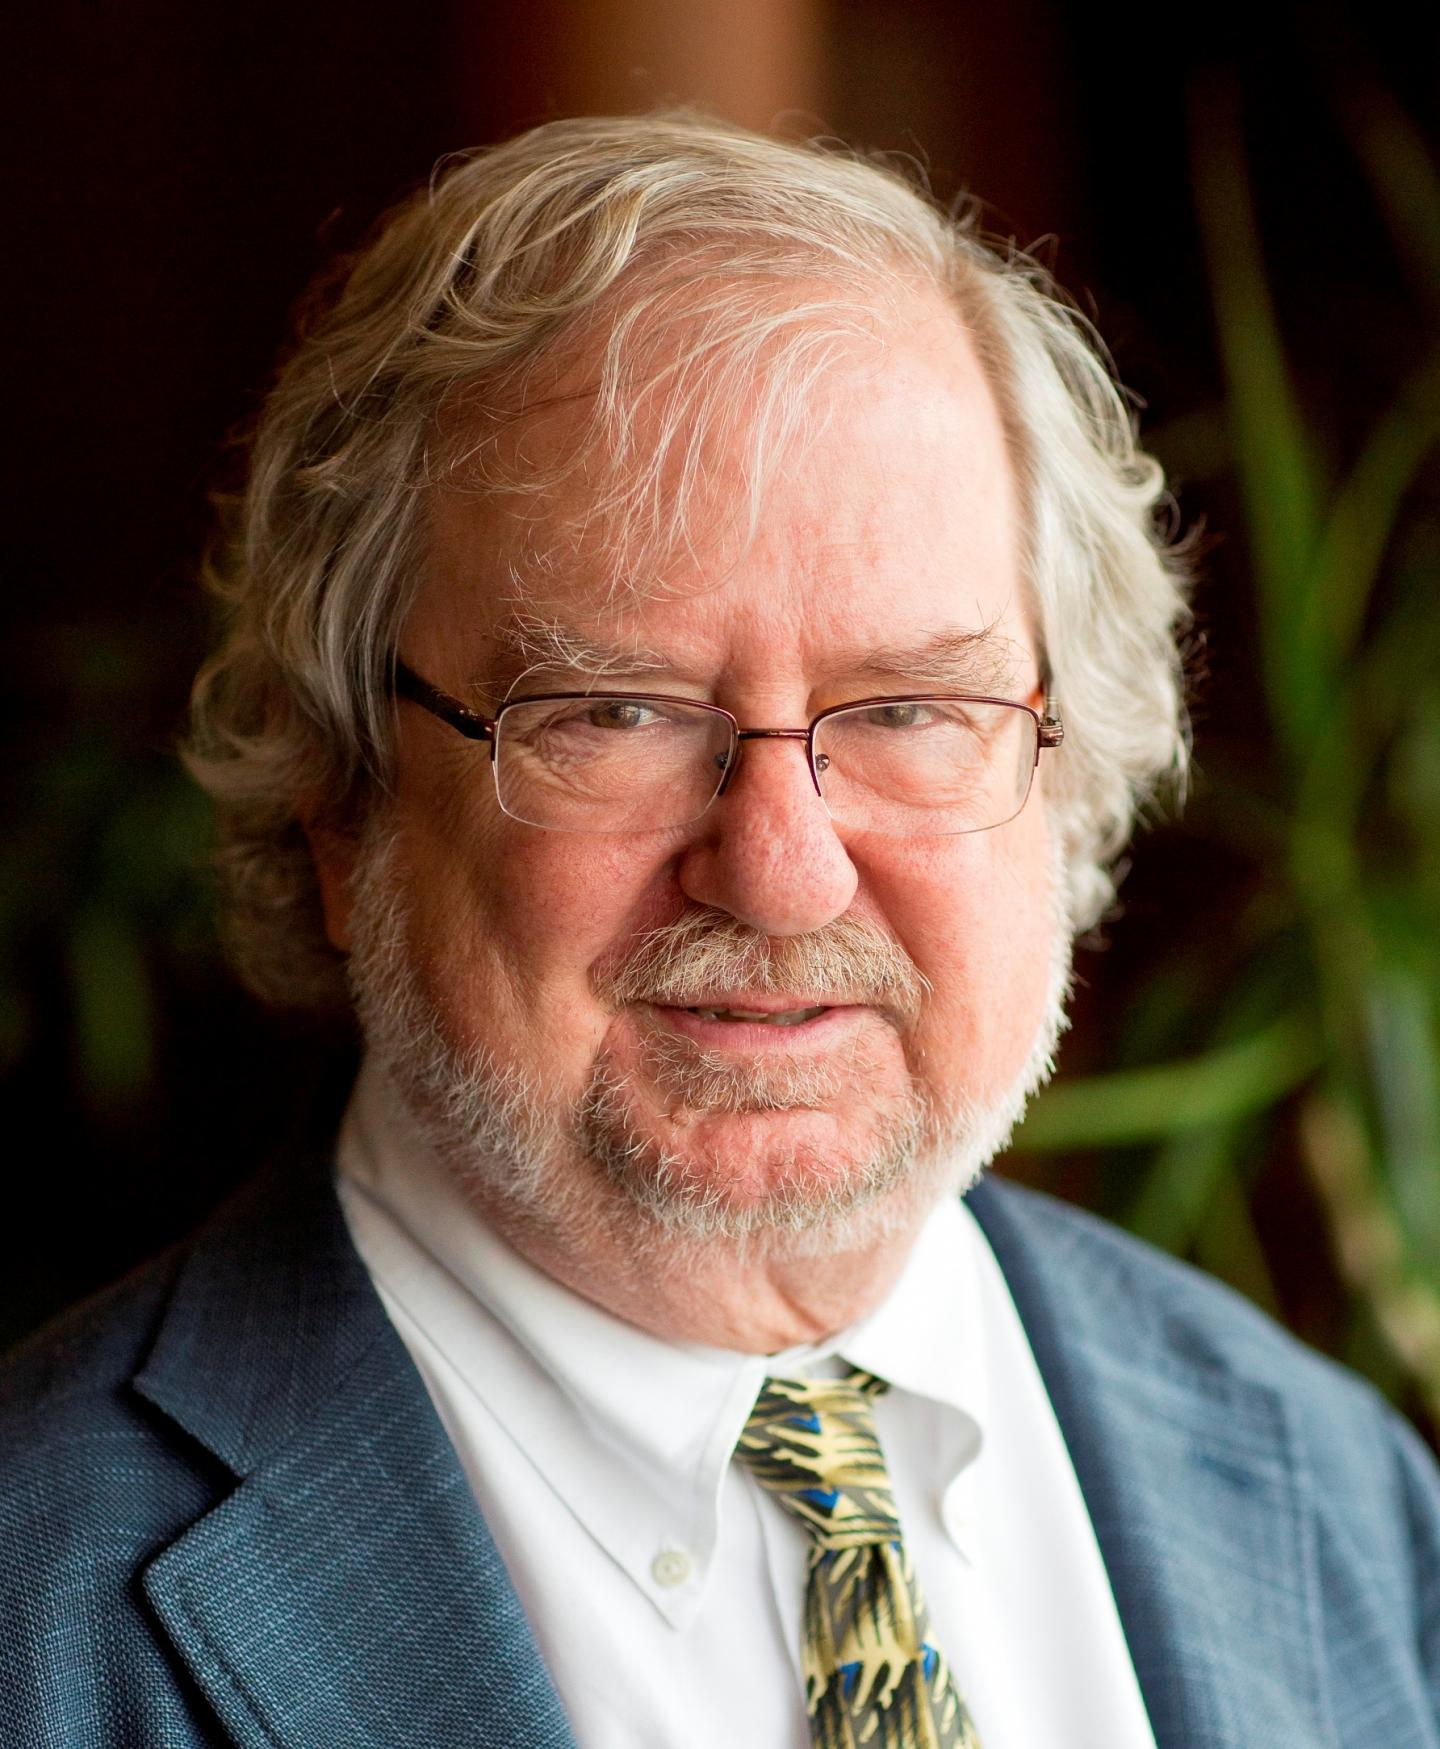 James P. Allison, University of Texas MD Anderson Cancer Center